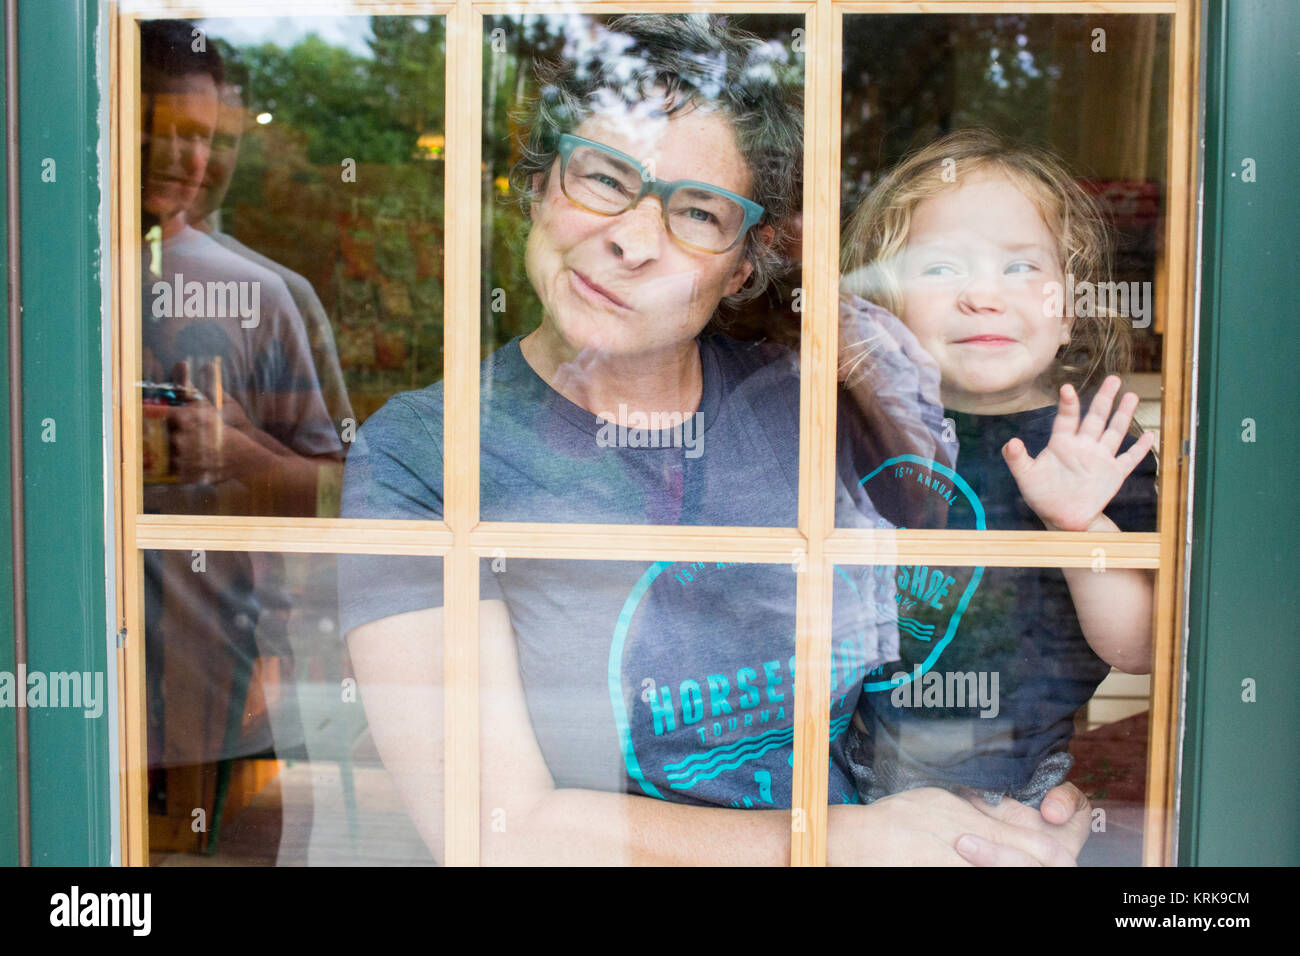 Caucasian mother and son making a face in door window - Stock Image